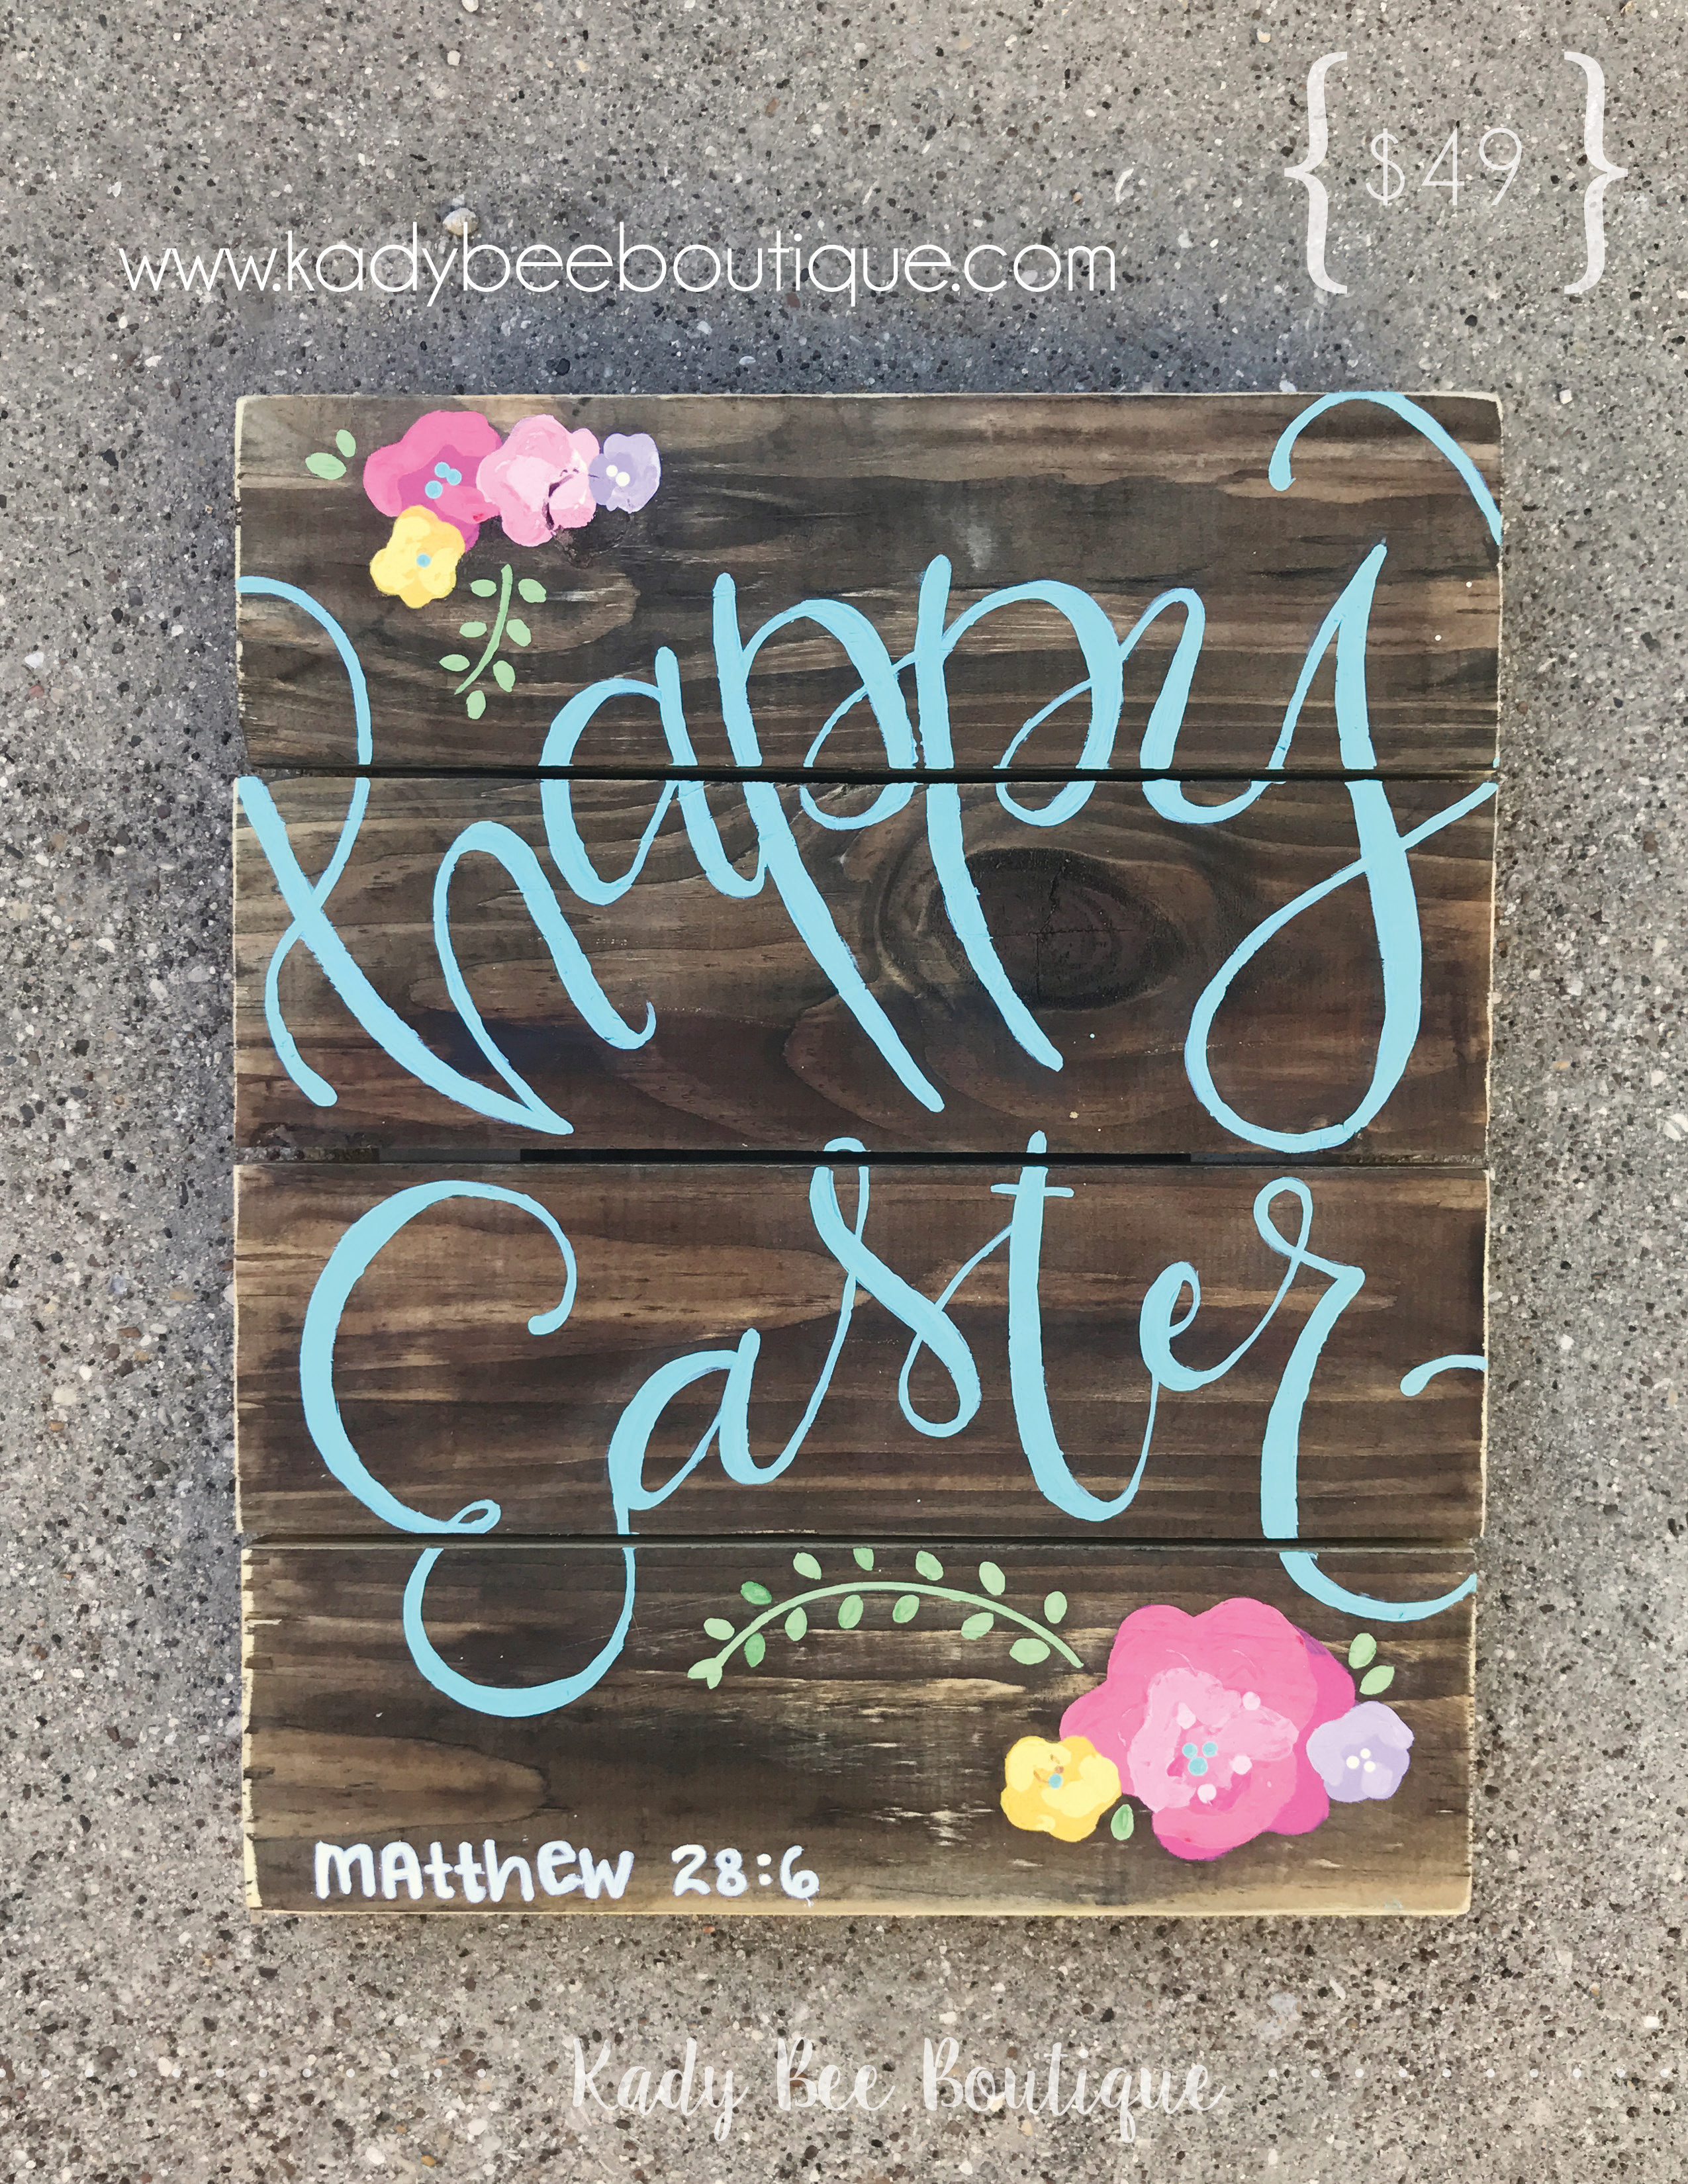 Happy Easter Wood Pallet Sign by Kady Bee Boutiqe